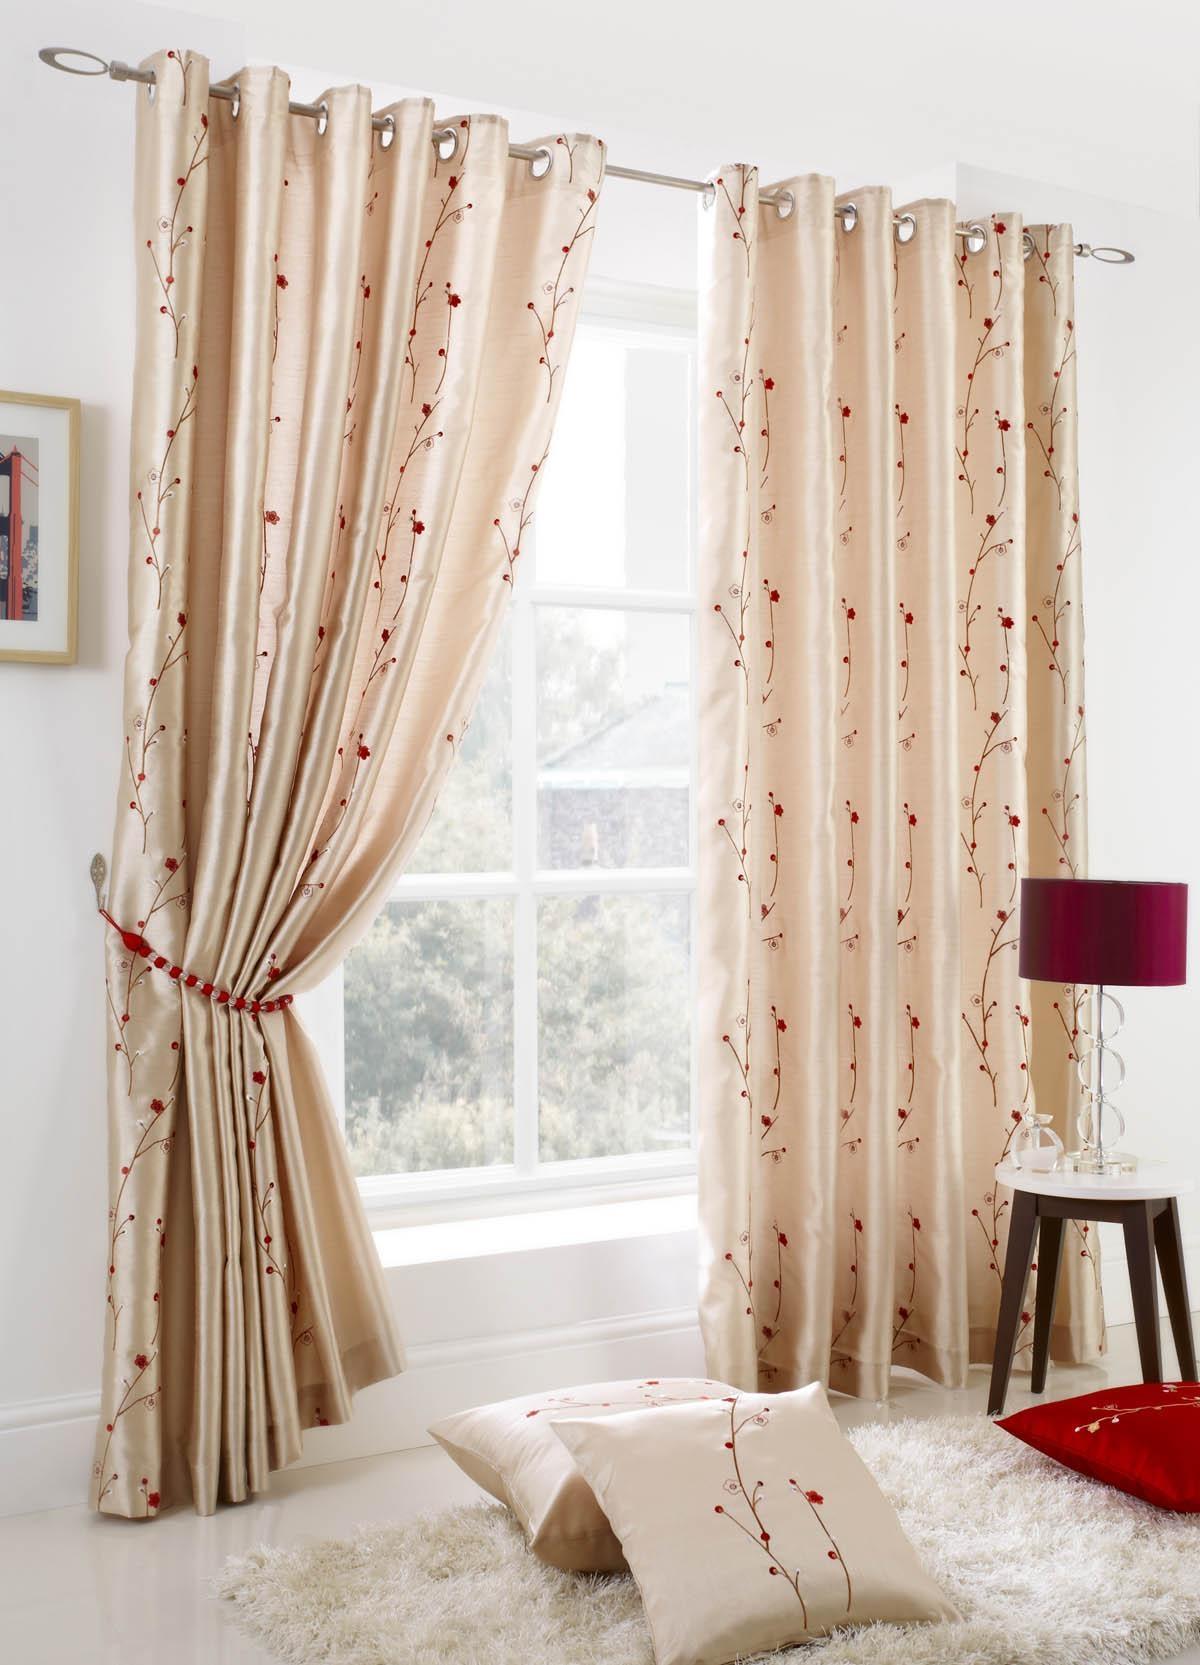 Blossom Eyelet Curtains Cream Free Uk Delivery Terrys Fabrics With Regard To Cream And Gold Eyelet Curtains (Image 4 of 15)